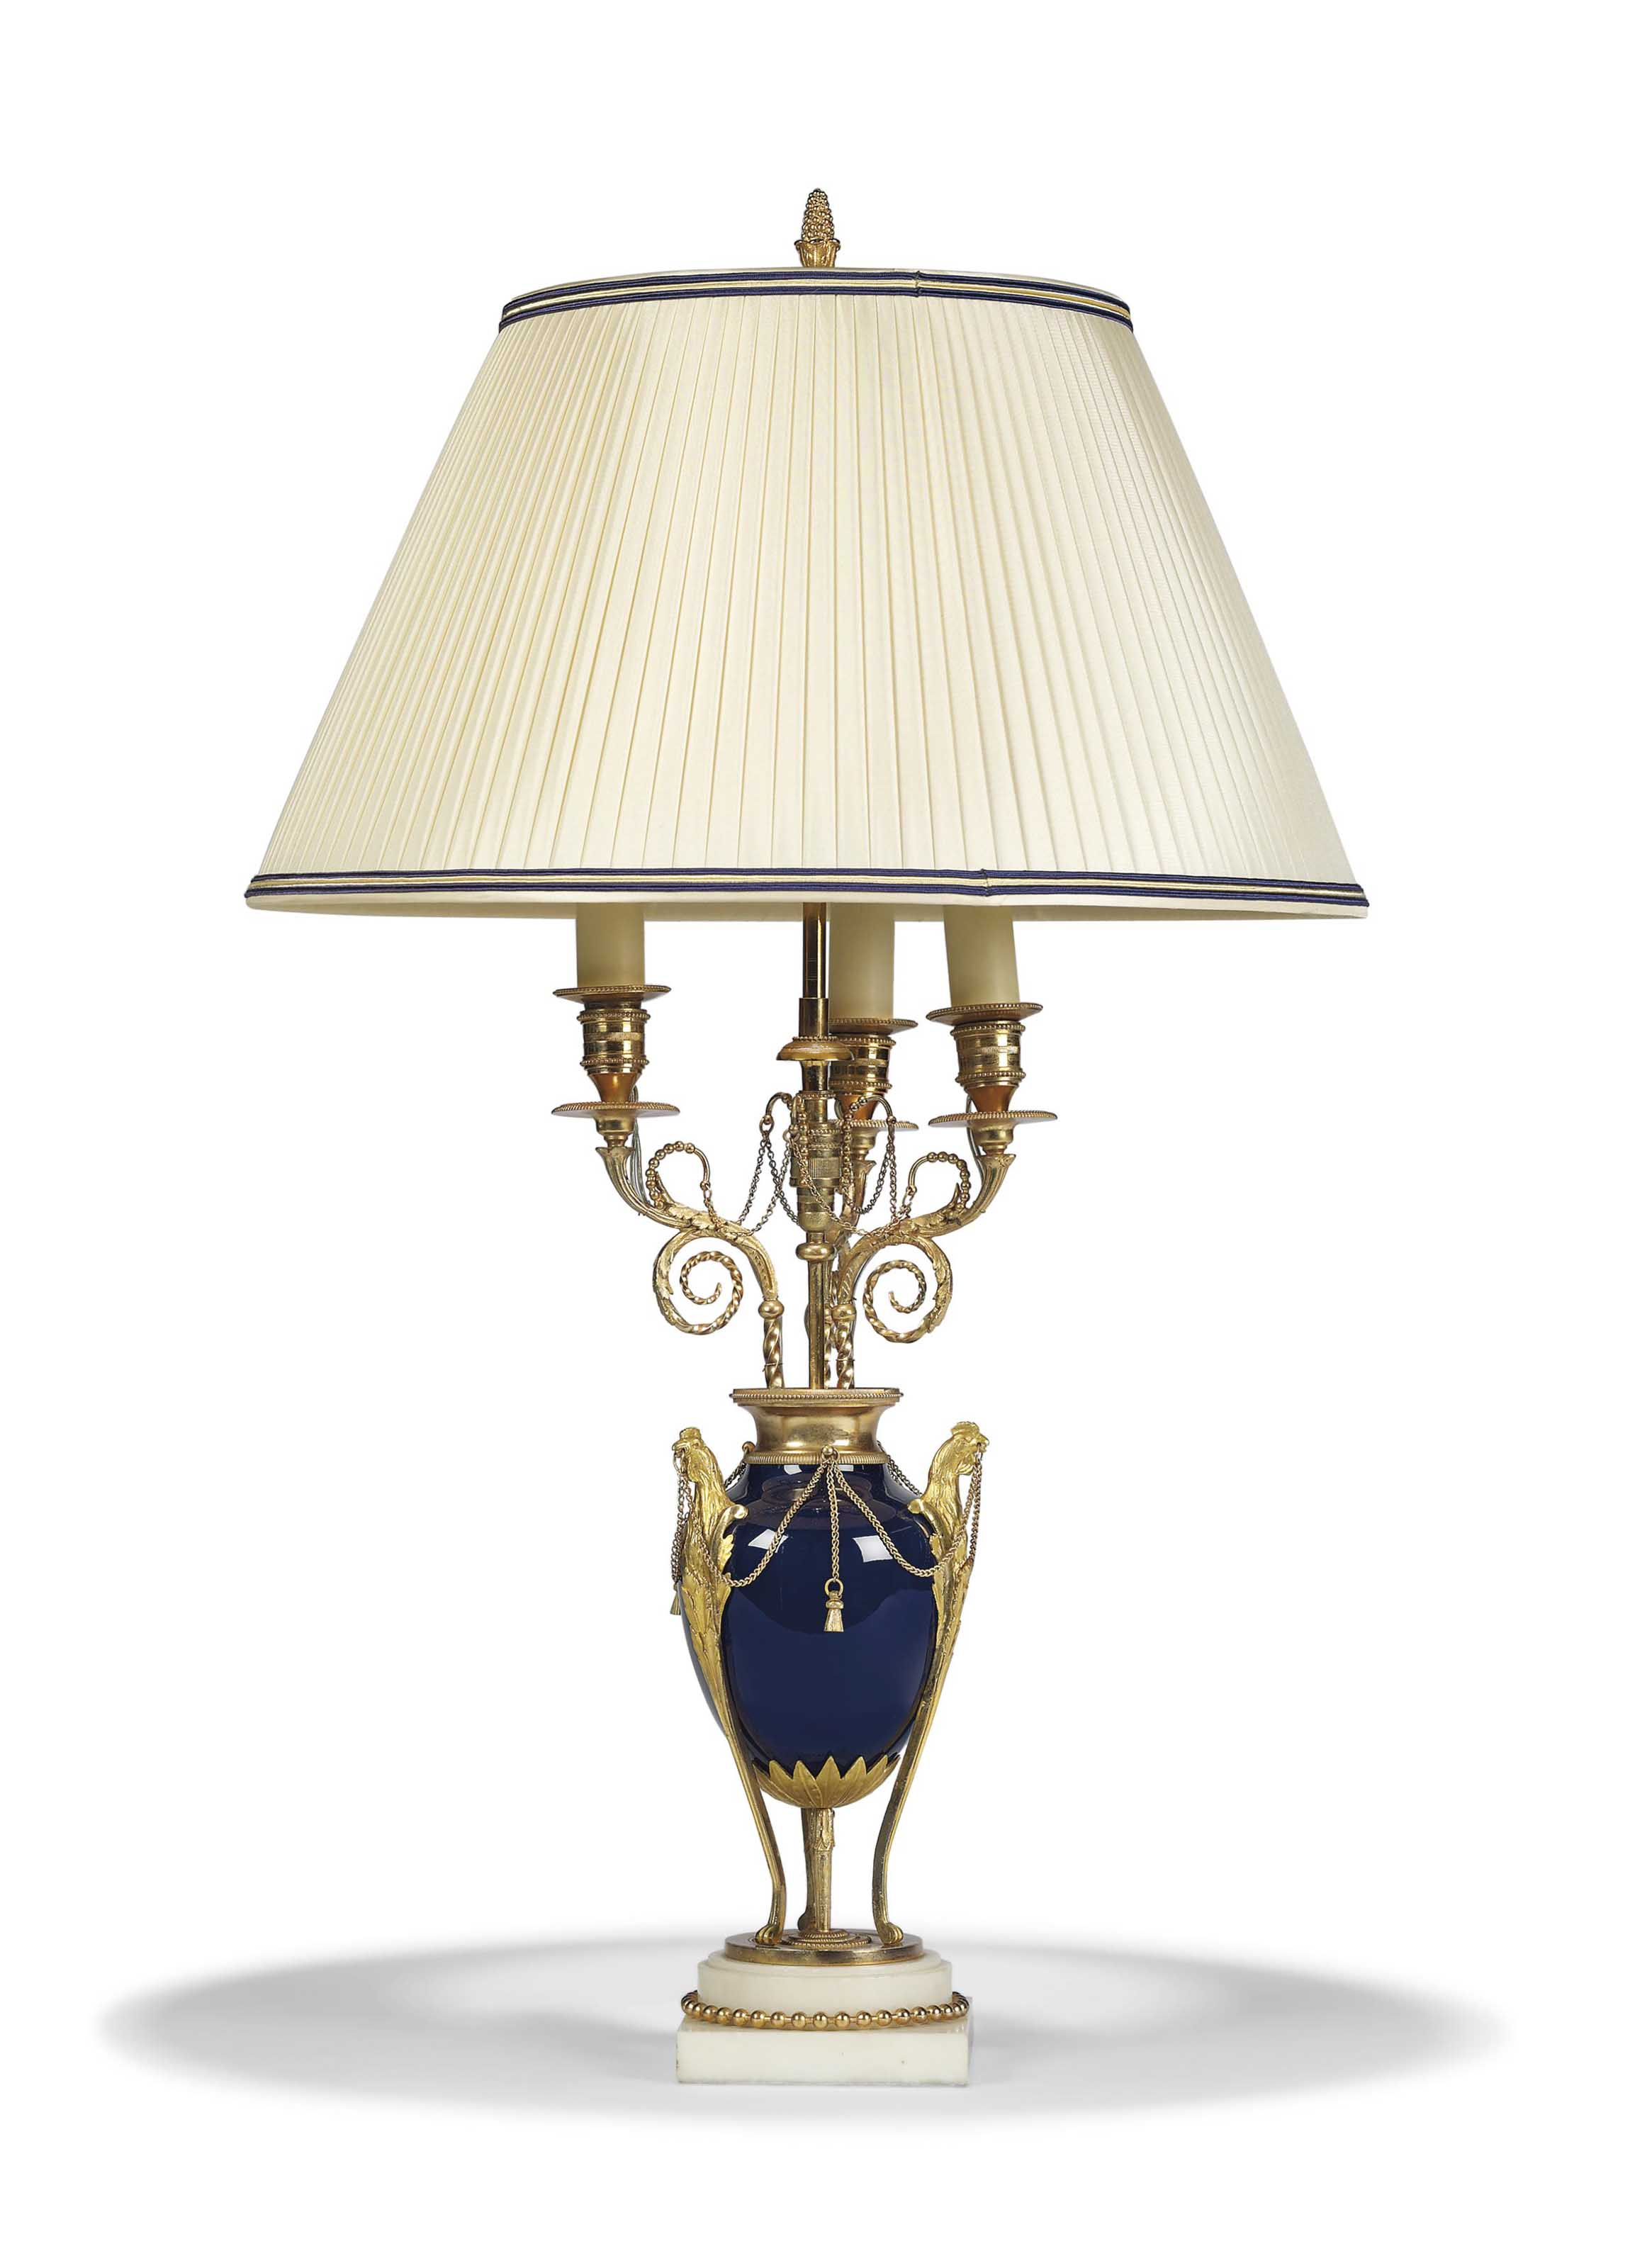 A FRENCH ORMOLU-MOUNTED BLUE P